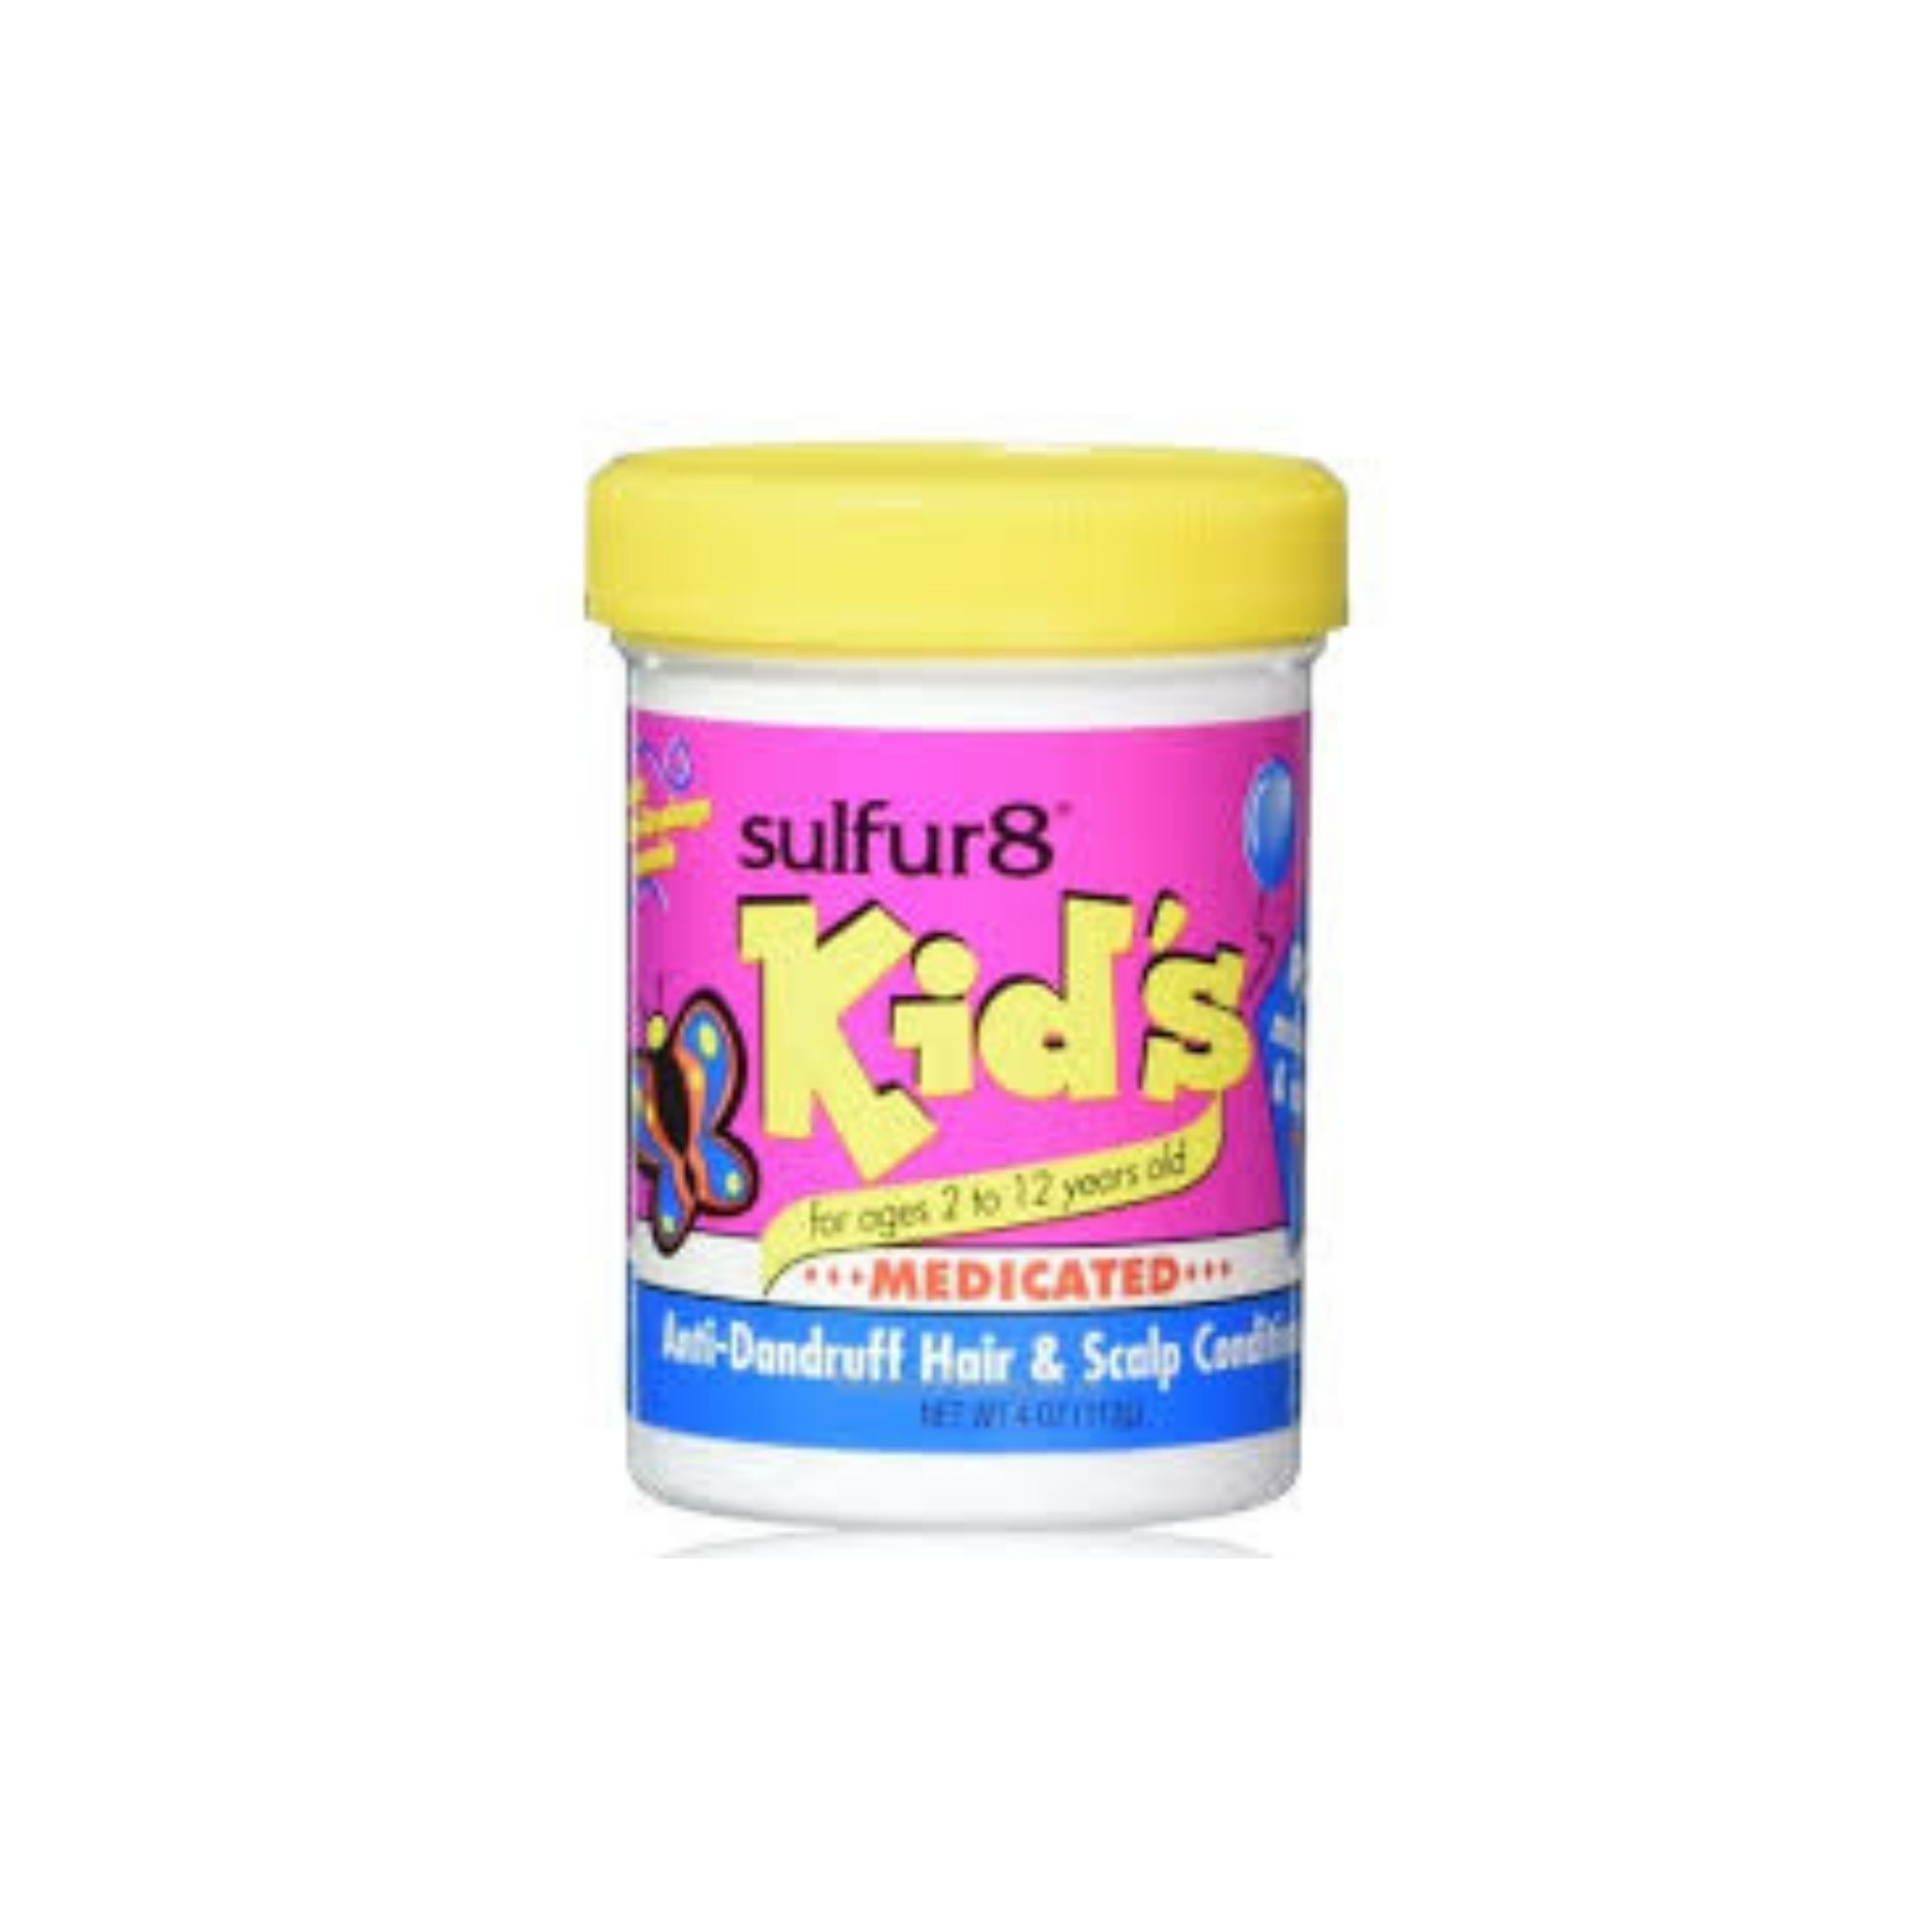 sulfur8-kids-anti-dandruff-hair-and-scalp-conditioner-medicated